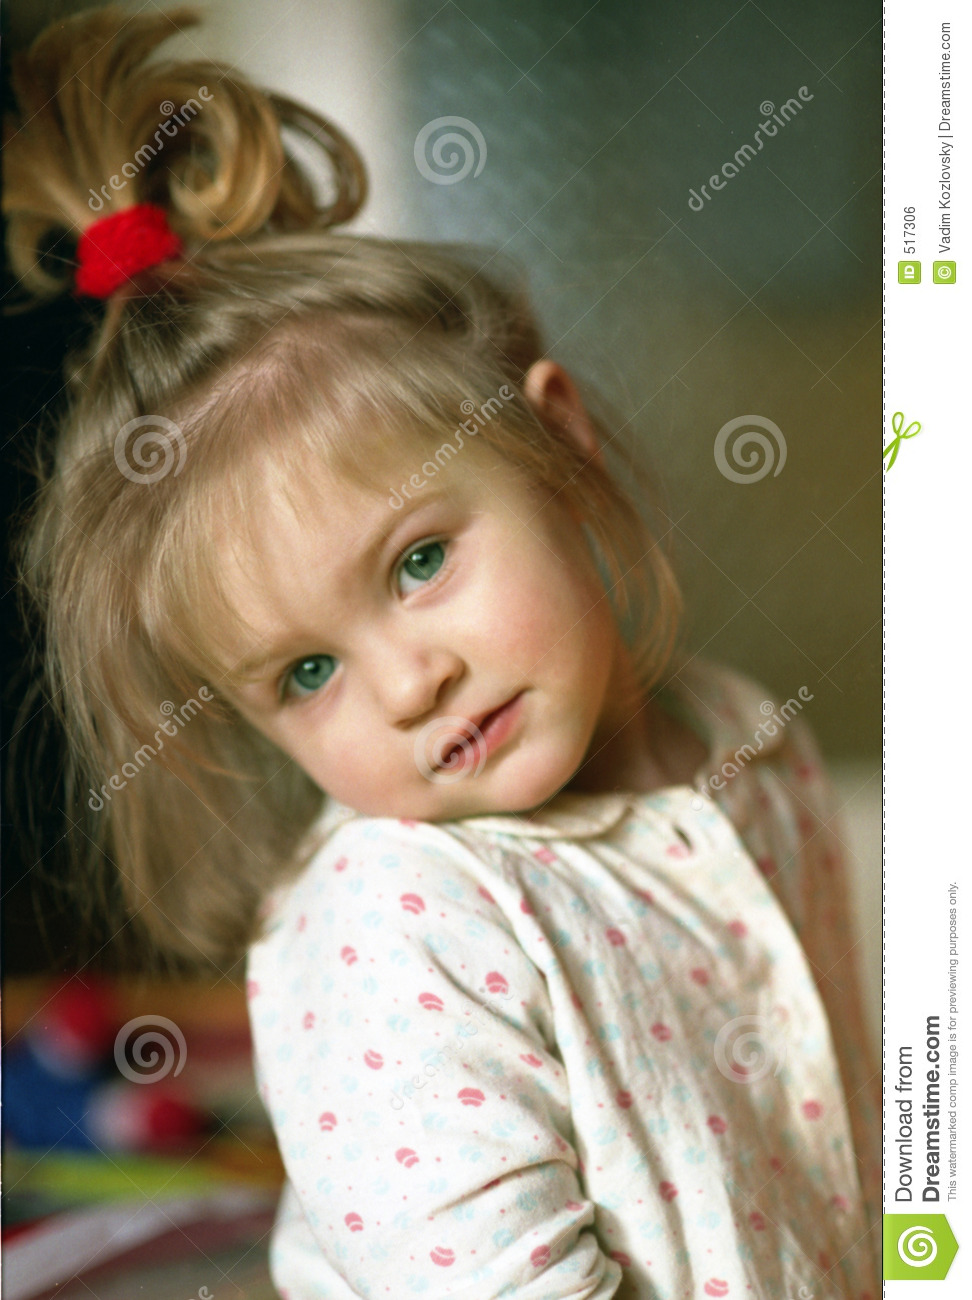 pretty girl royalty free stock image image 517306 little girl clipart pattern little girl clipart letters